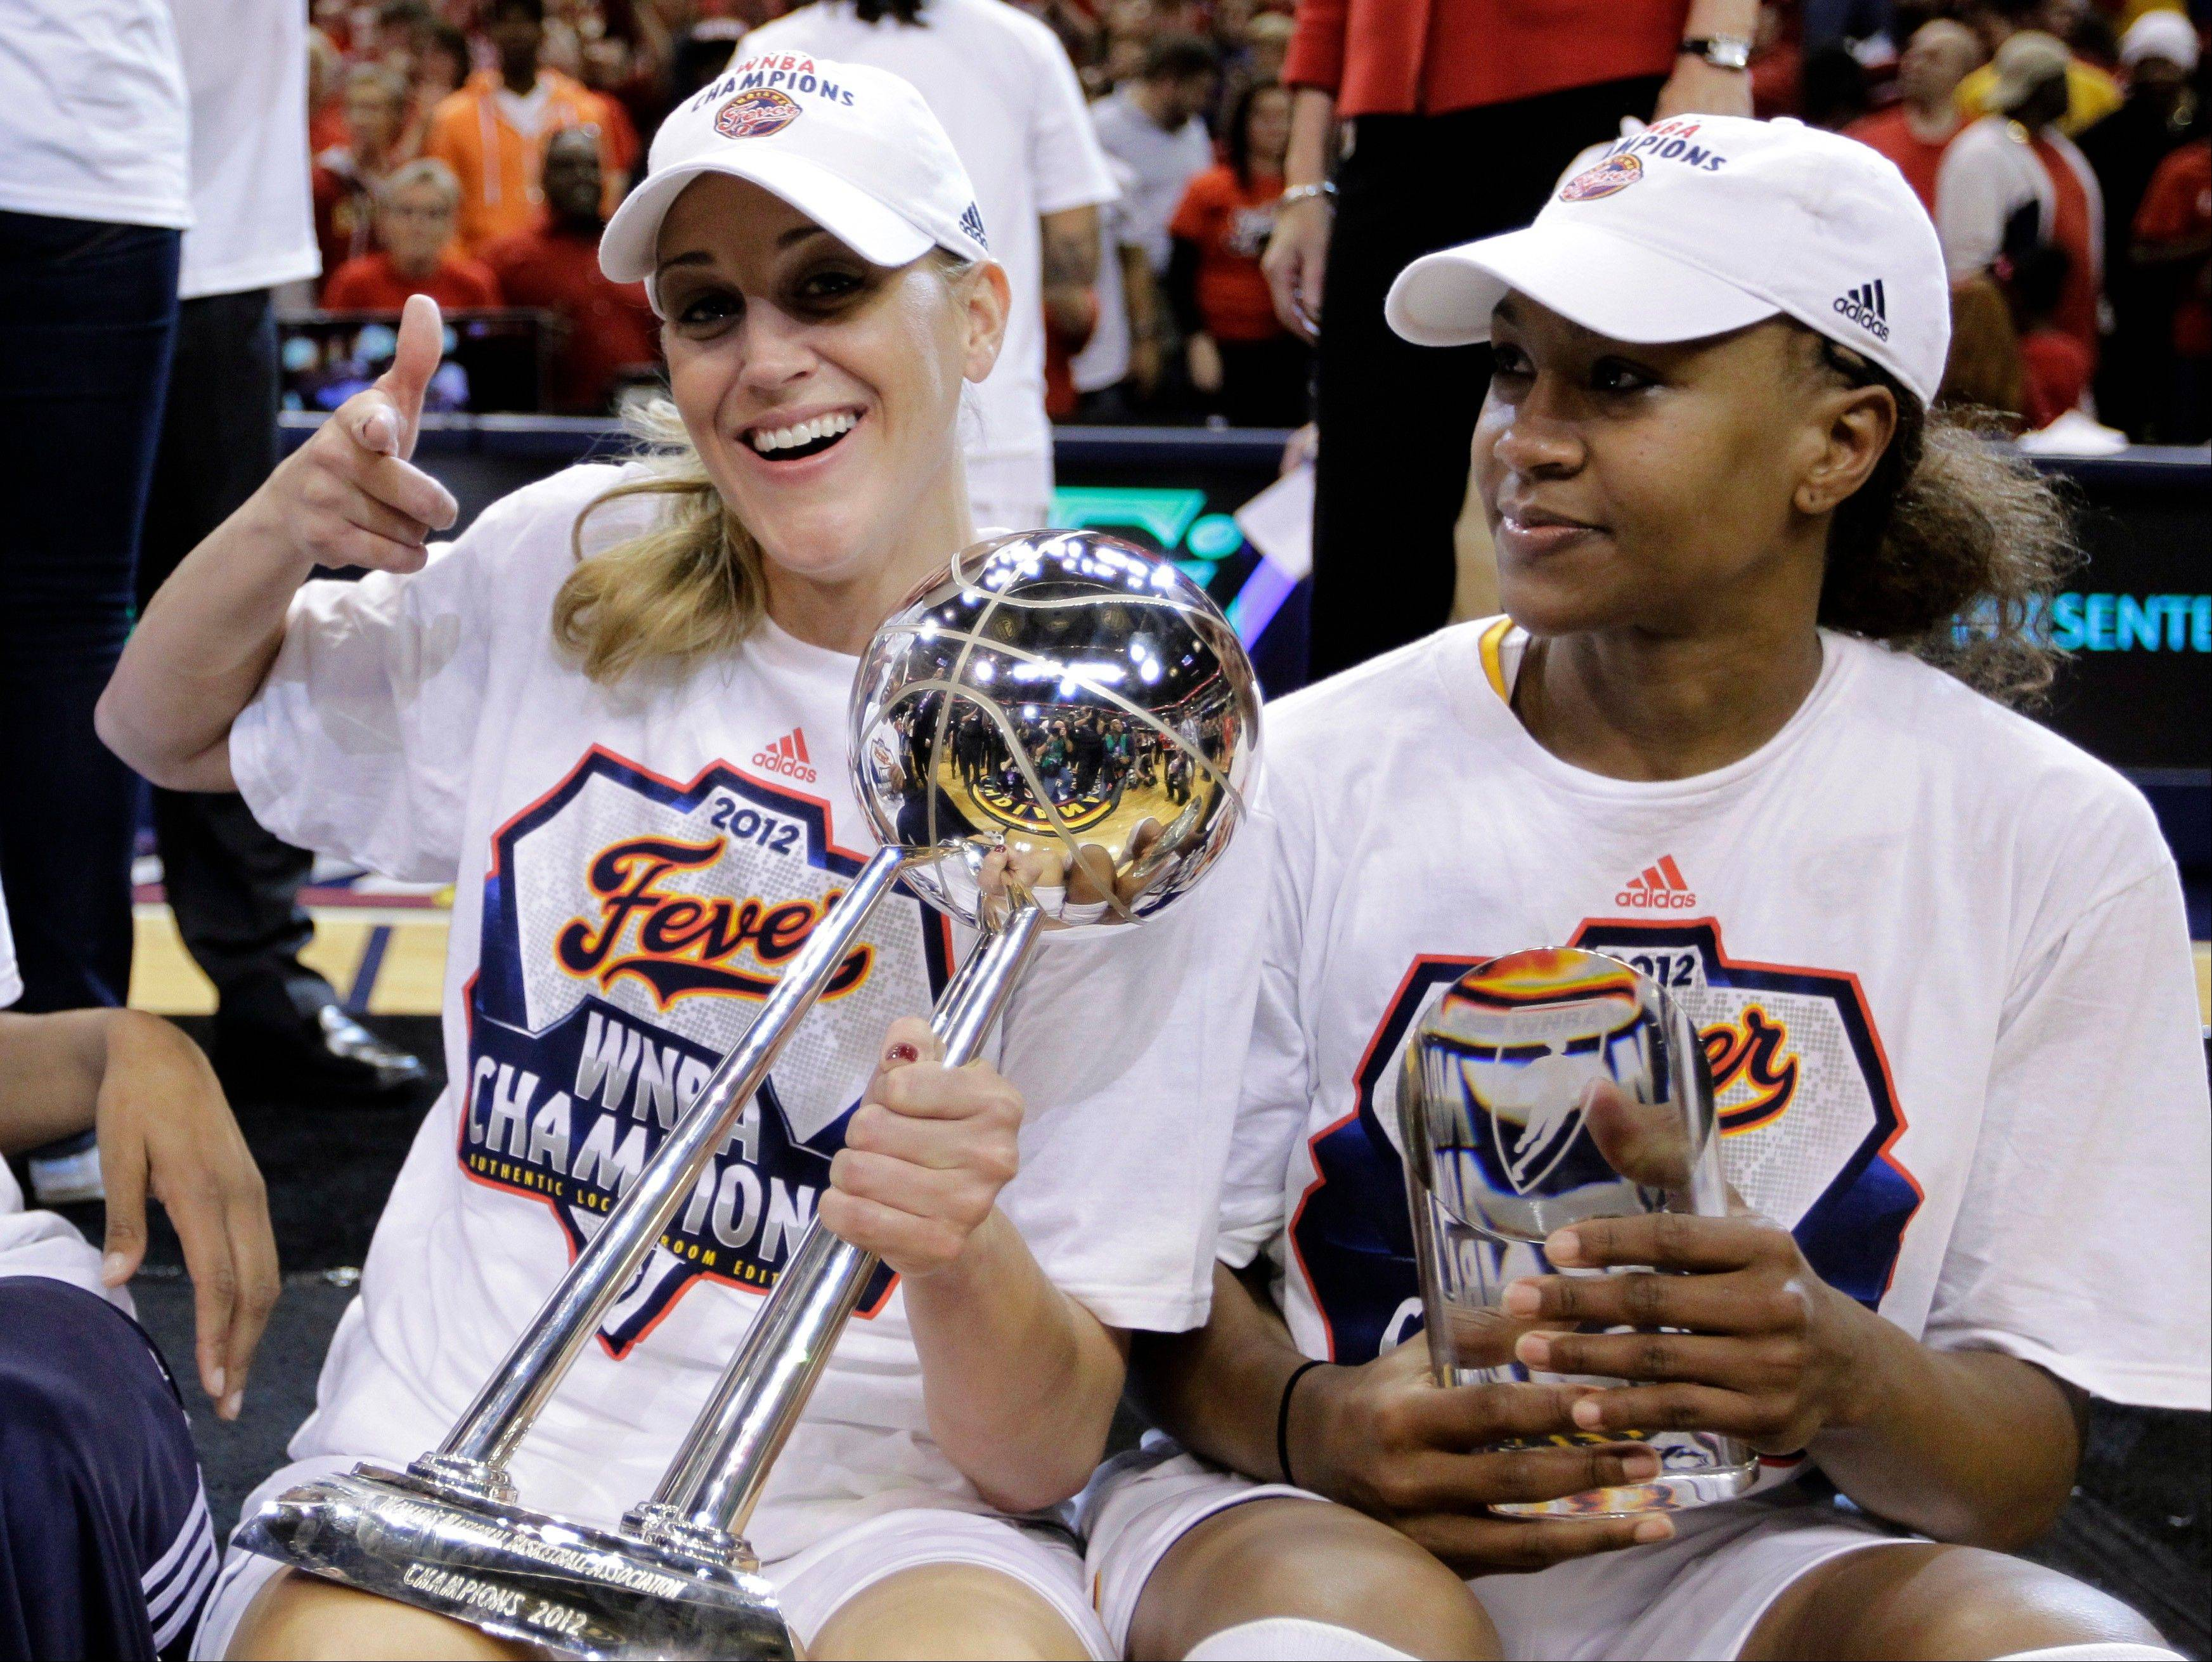 Indiana Fever guard Katie Douglas, left, and forward Tamika Catchings, the series MVP, pose with the trophies after winning the WNBA basketball Finals against the Minnesota Lynx in Indianapolis, Sunday, Oct. 21, 2012. The Fever won 87-78 to clinch their first WNBA championship.